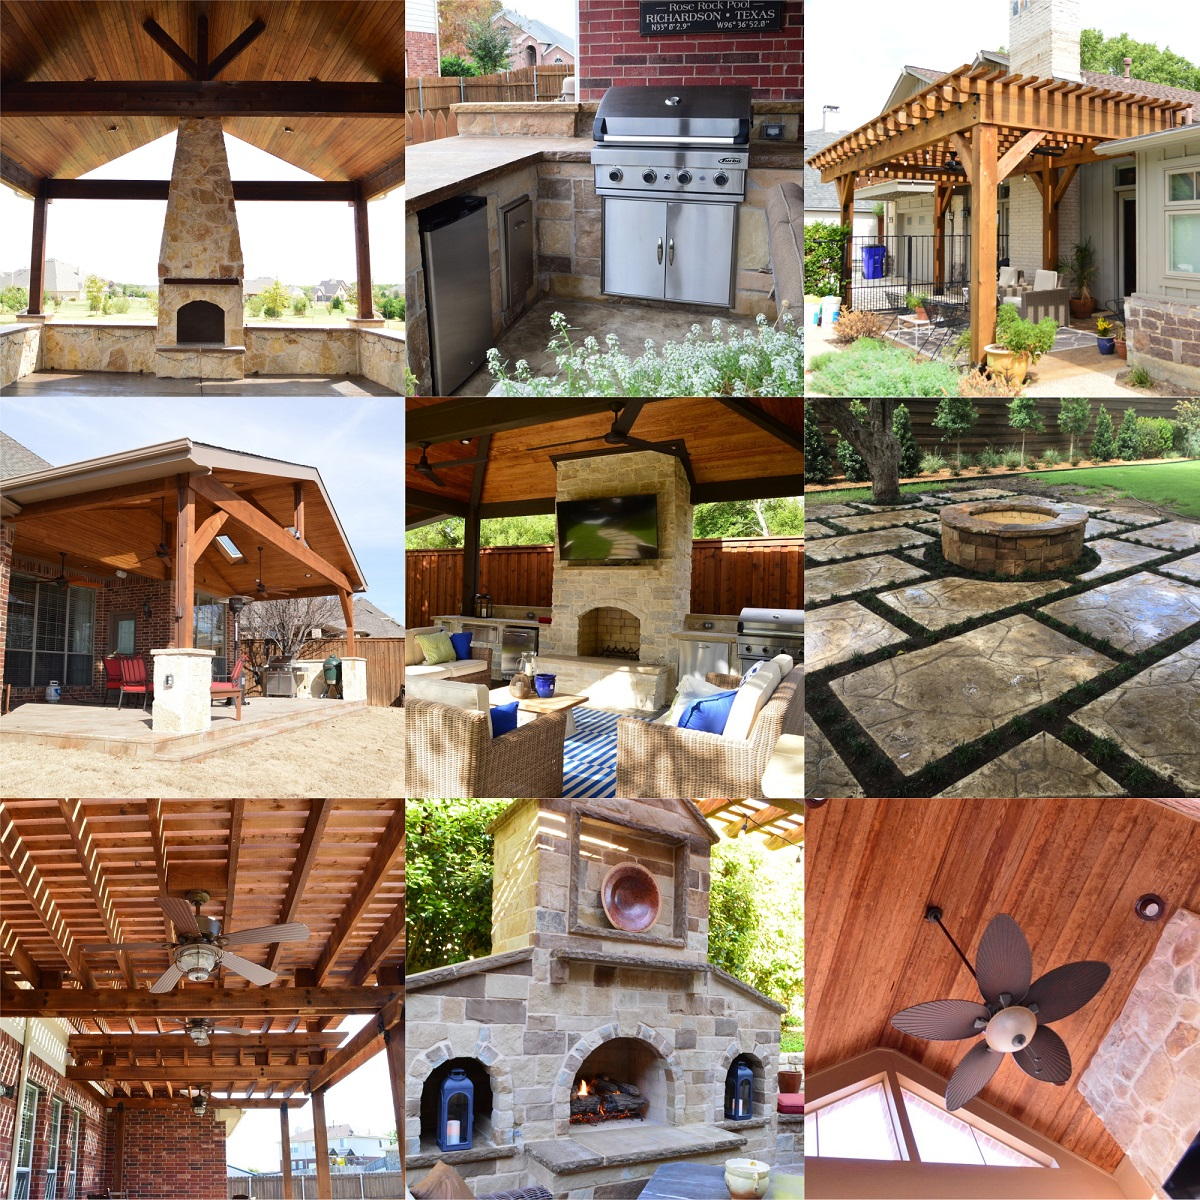 Contact-us-today-and-get-the-outdoor-living-space-you-deserve